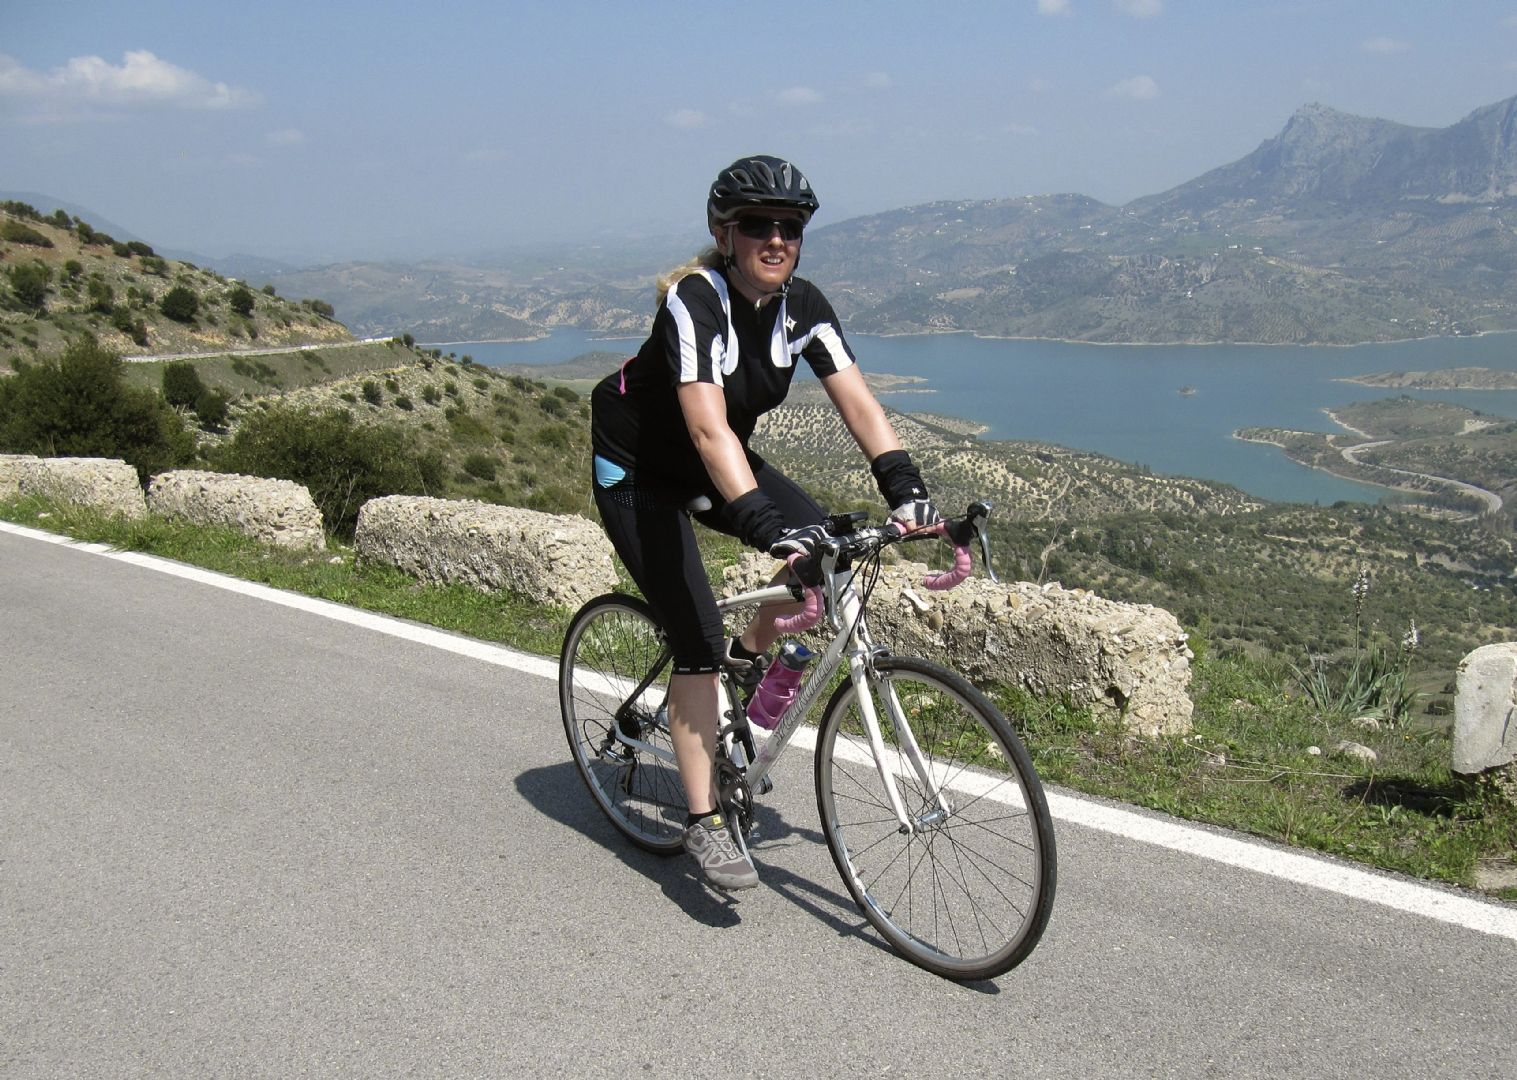 _Customer.71760.15912.jpg - Southern Spain - Roads of Ronda - Self-Guided Road Cycling Holiday - Road Cycling